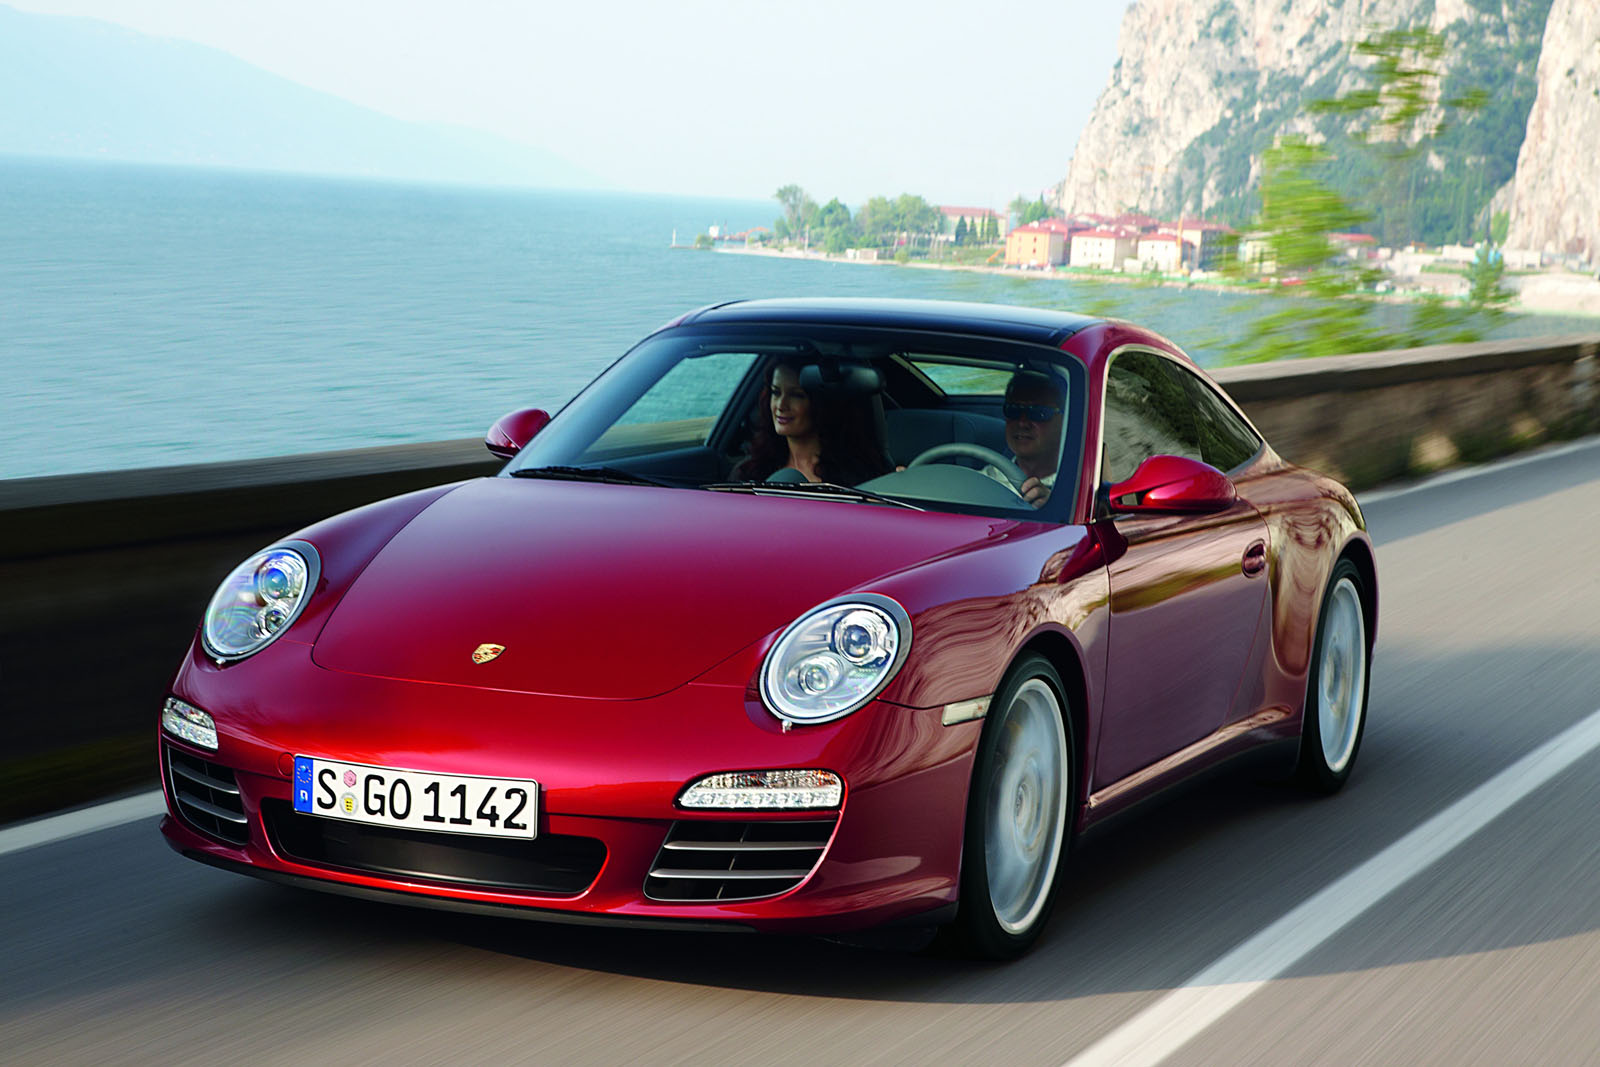 Download This High Resolution Picture of the 2009 Porsche 911 Targa 4S